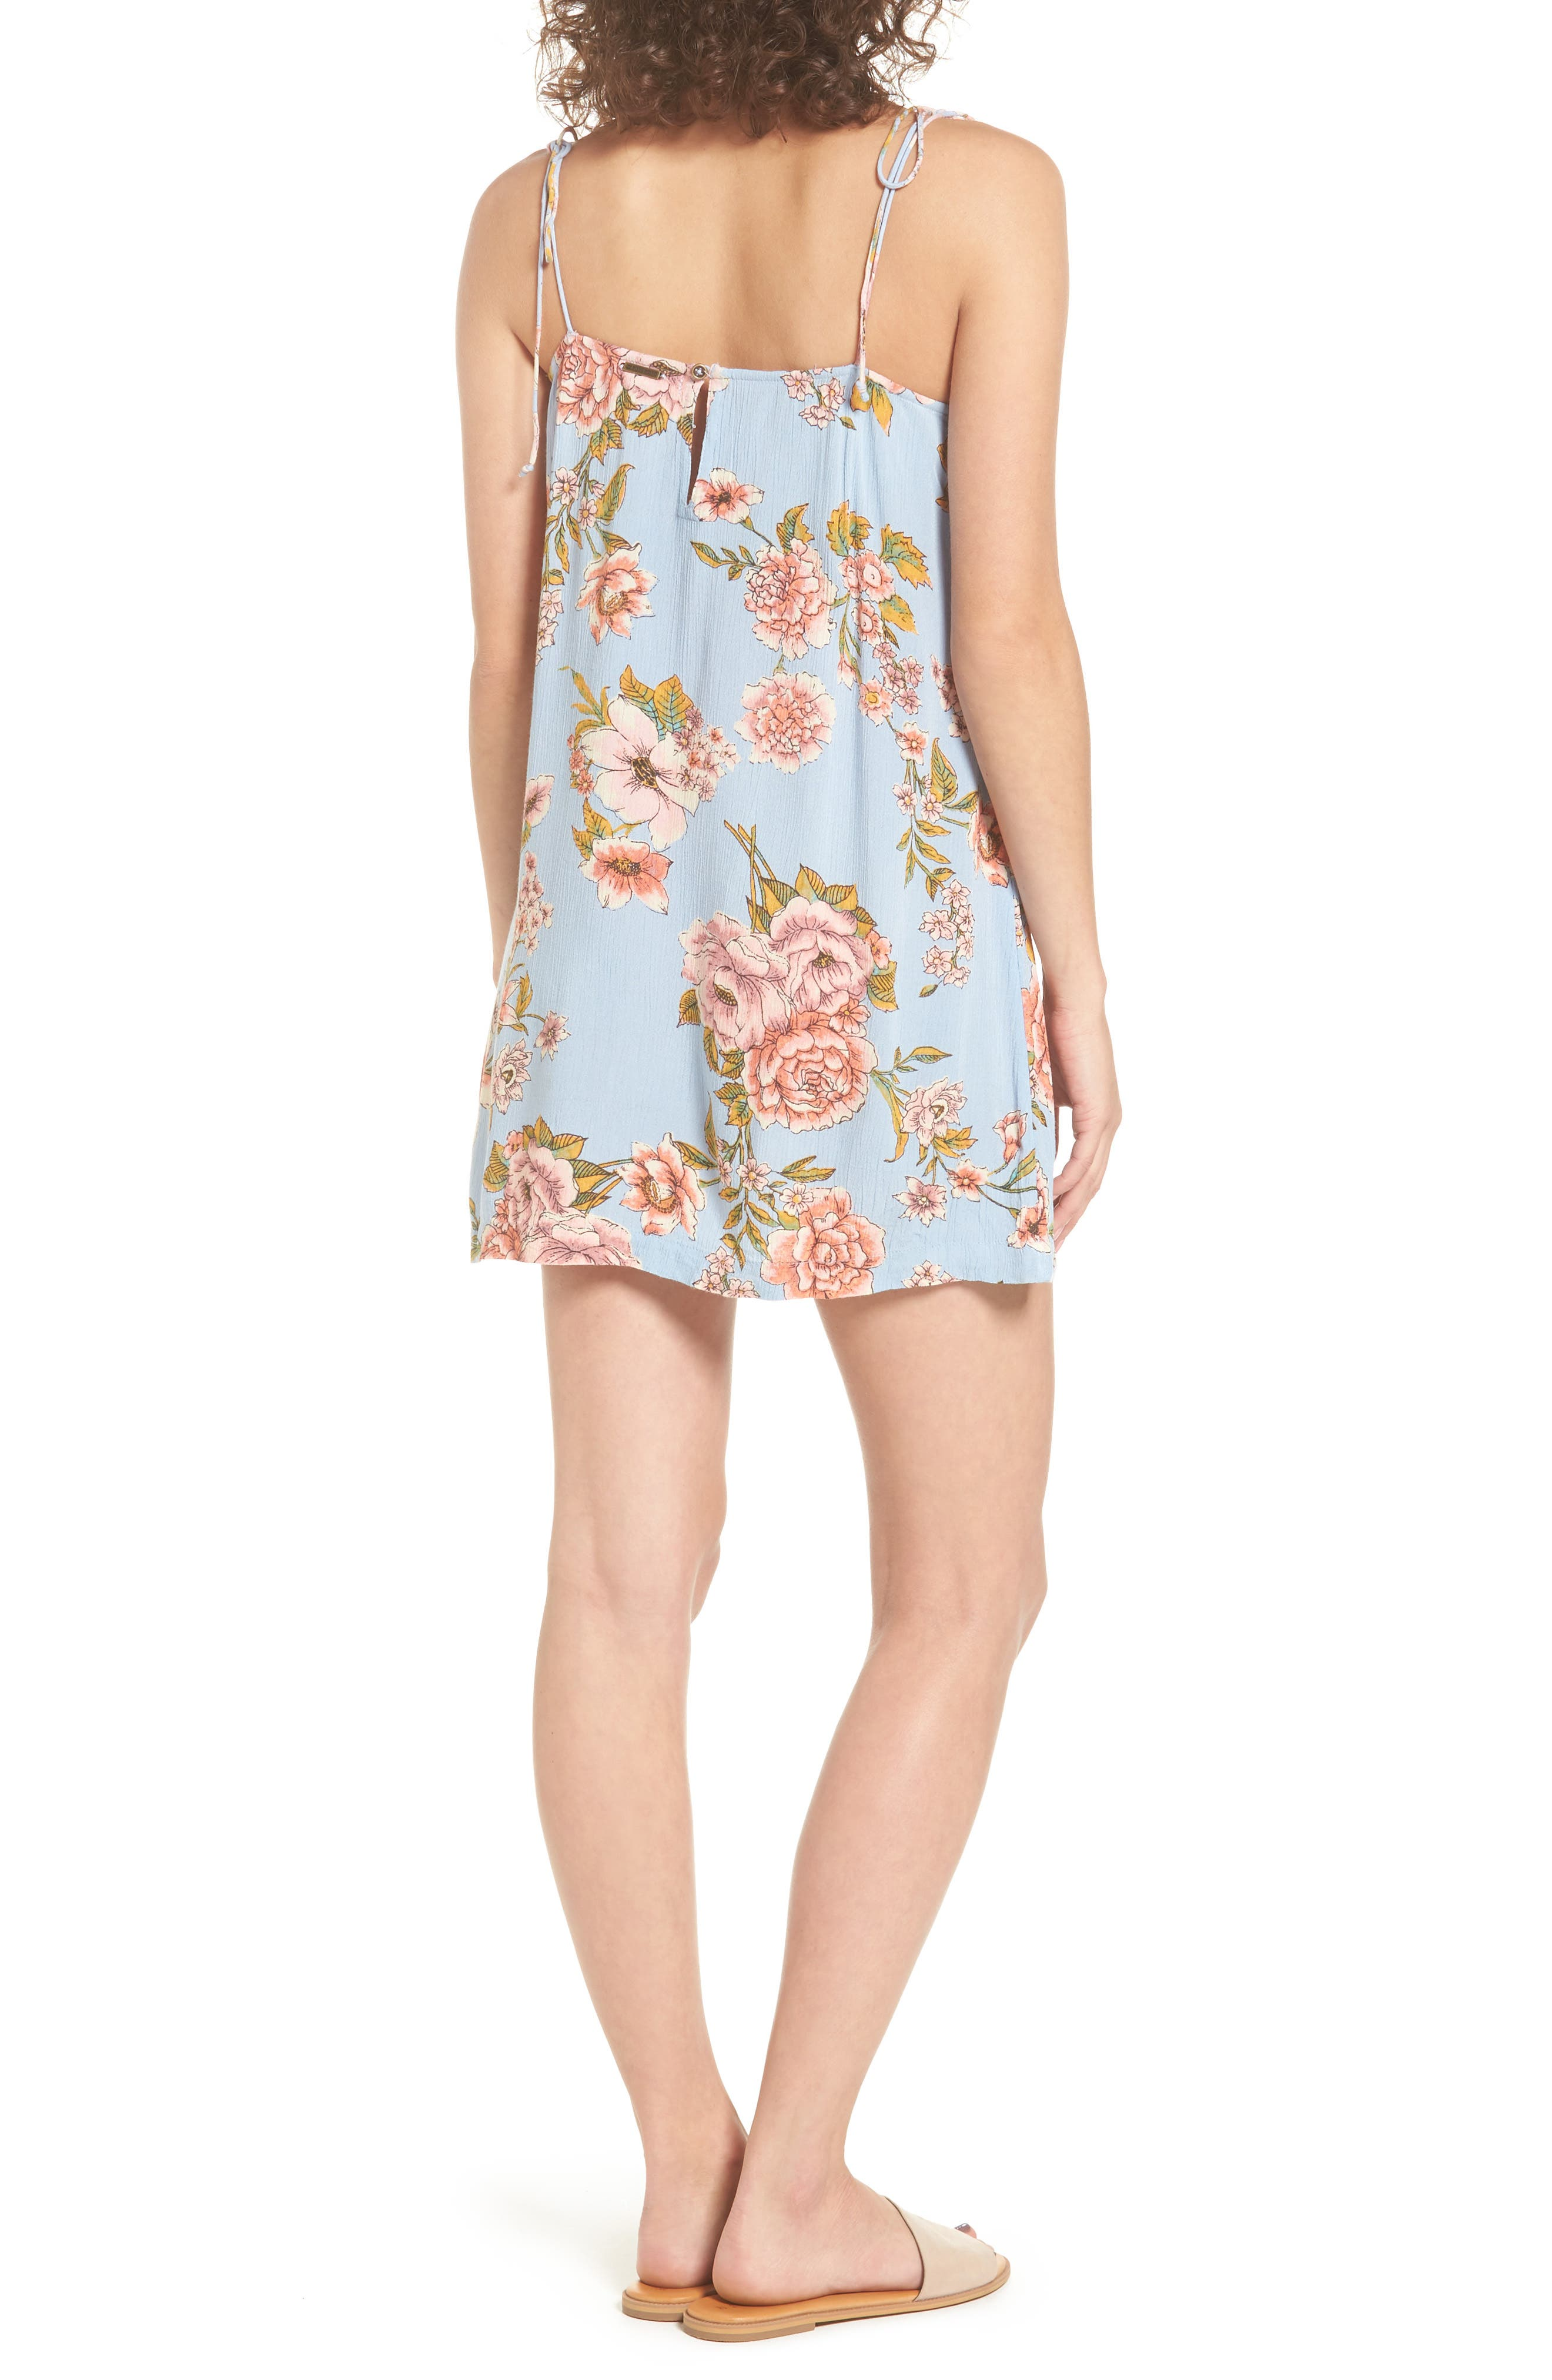 Night Out Floral Camisole Dress,                             Alternate thumbnail 2, color,                             488